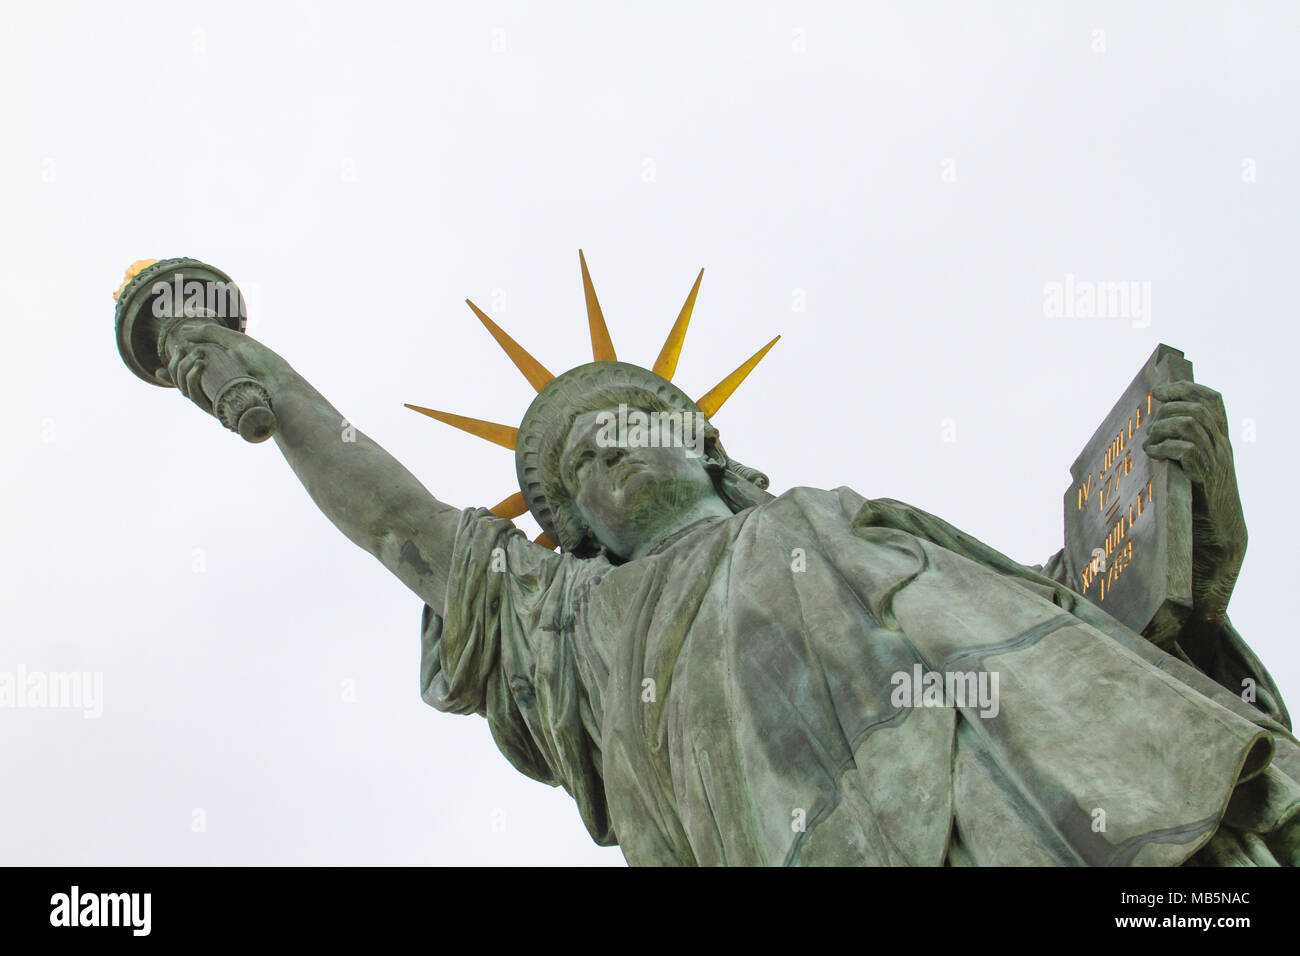 Paris, France -  04 April, 2018. A replica of the Statue of Liberty near the Grenelle Bridge on the Île aux Cygnes in Paris, France on 04 April 2018. This statue was given in 1889 to France by U.S. citizens living in Paris to celebrate the French Revolution three years after the main statue in New York was inaugurated. @ David Mbiyu/Alamy Live News - Stock Image